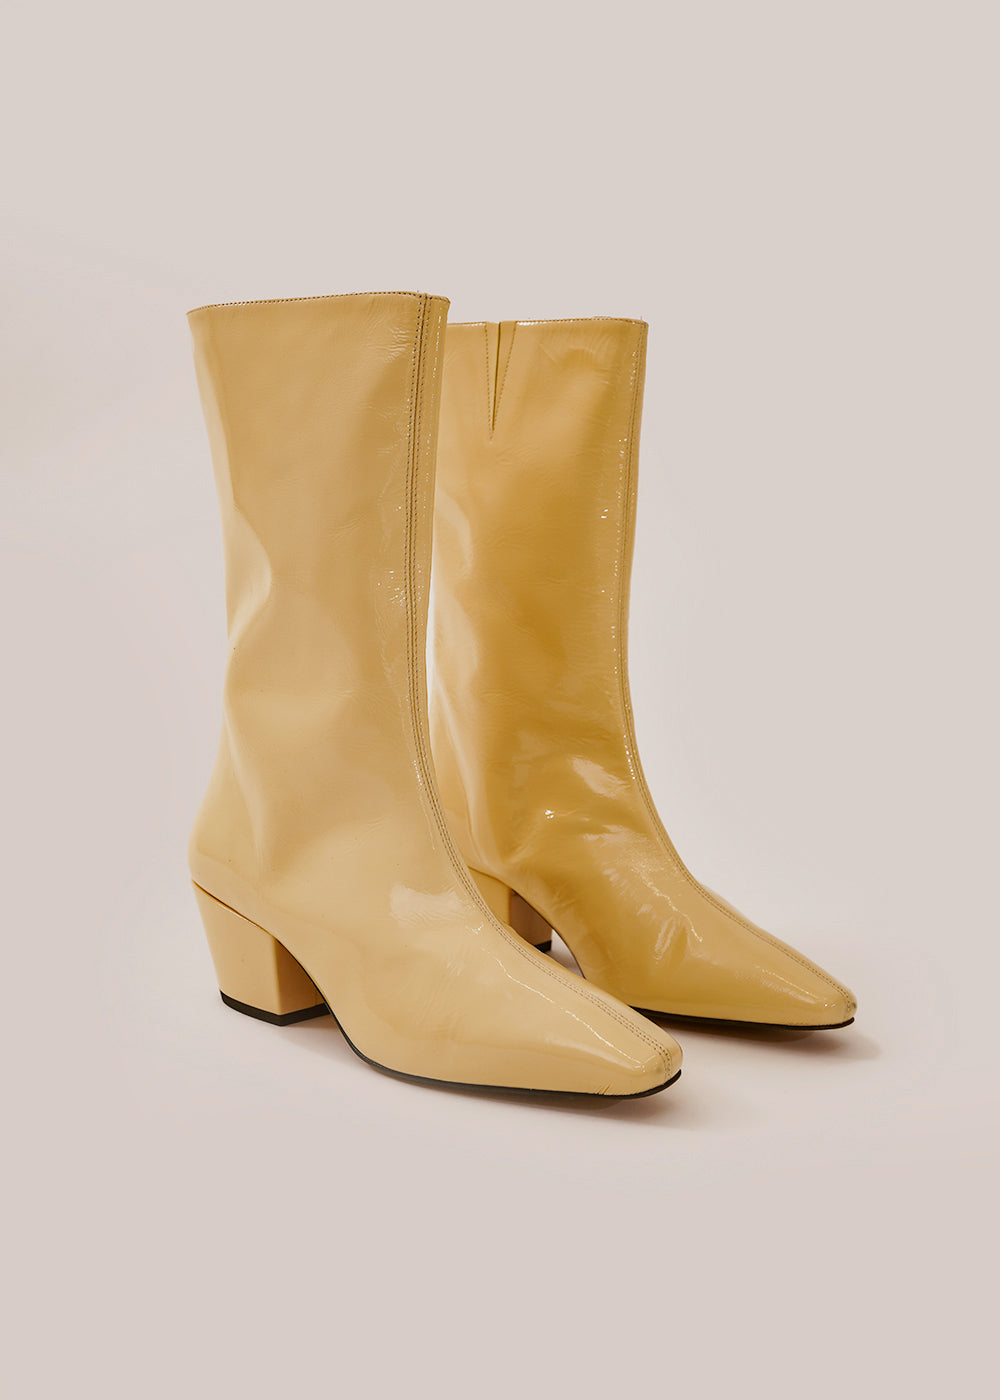 The Myrtle Boots